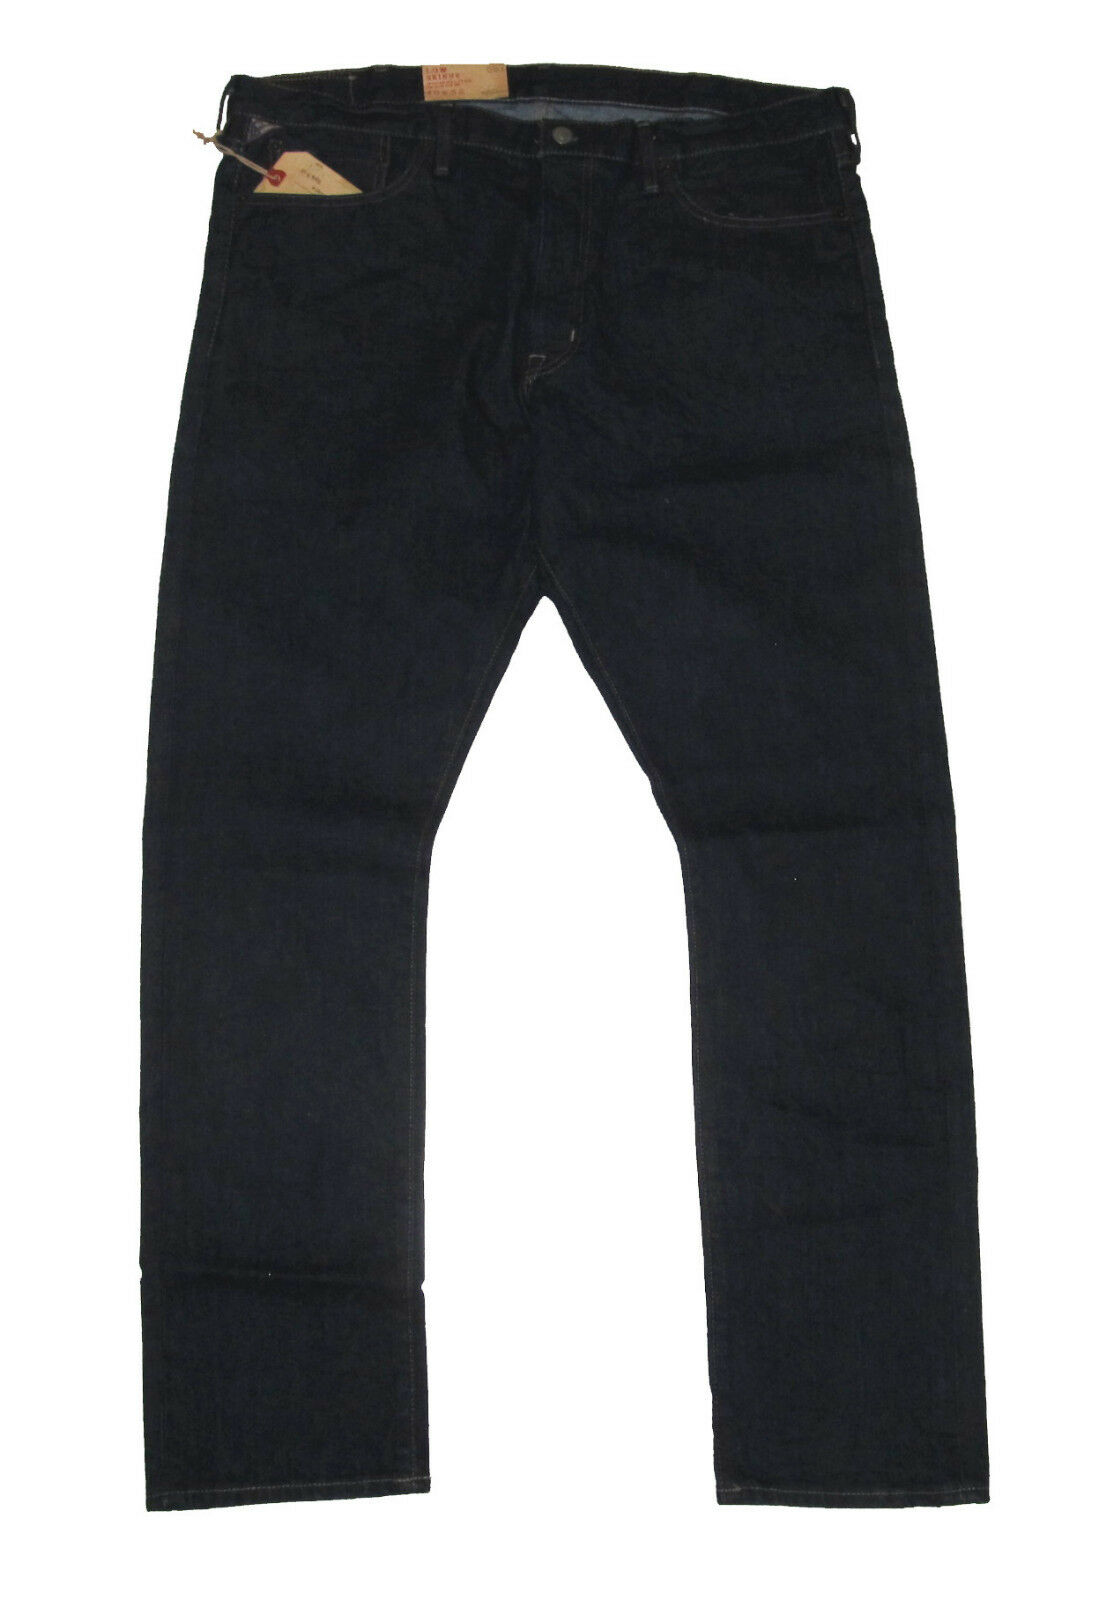 Polo Ralph Lauren Denim & Supply Mens Low Skinny Slim Dark Denim Jeans New